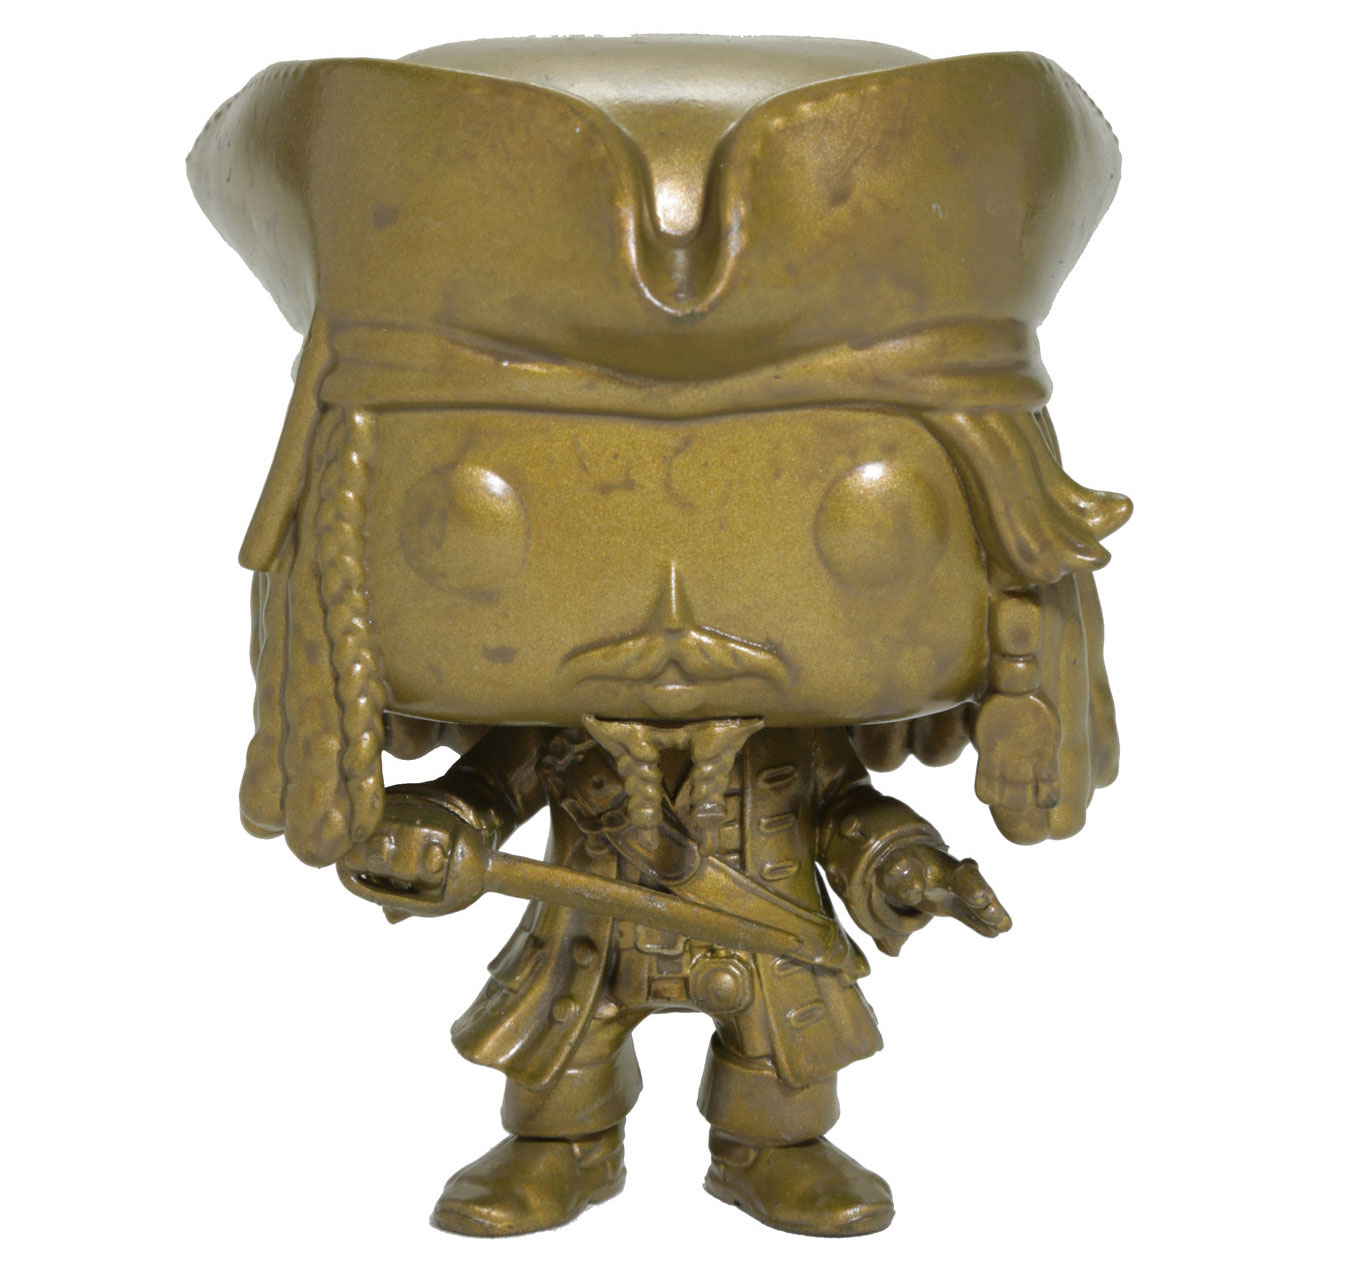 jack-sparrow-pirates-funko-pop-gold-figure-hot-topic-1